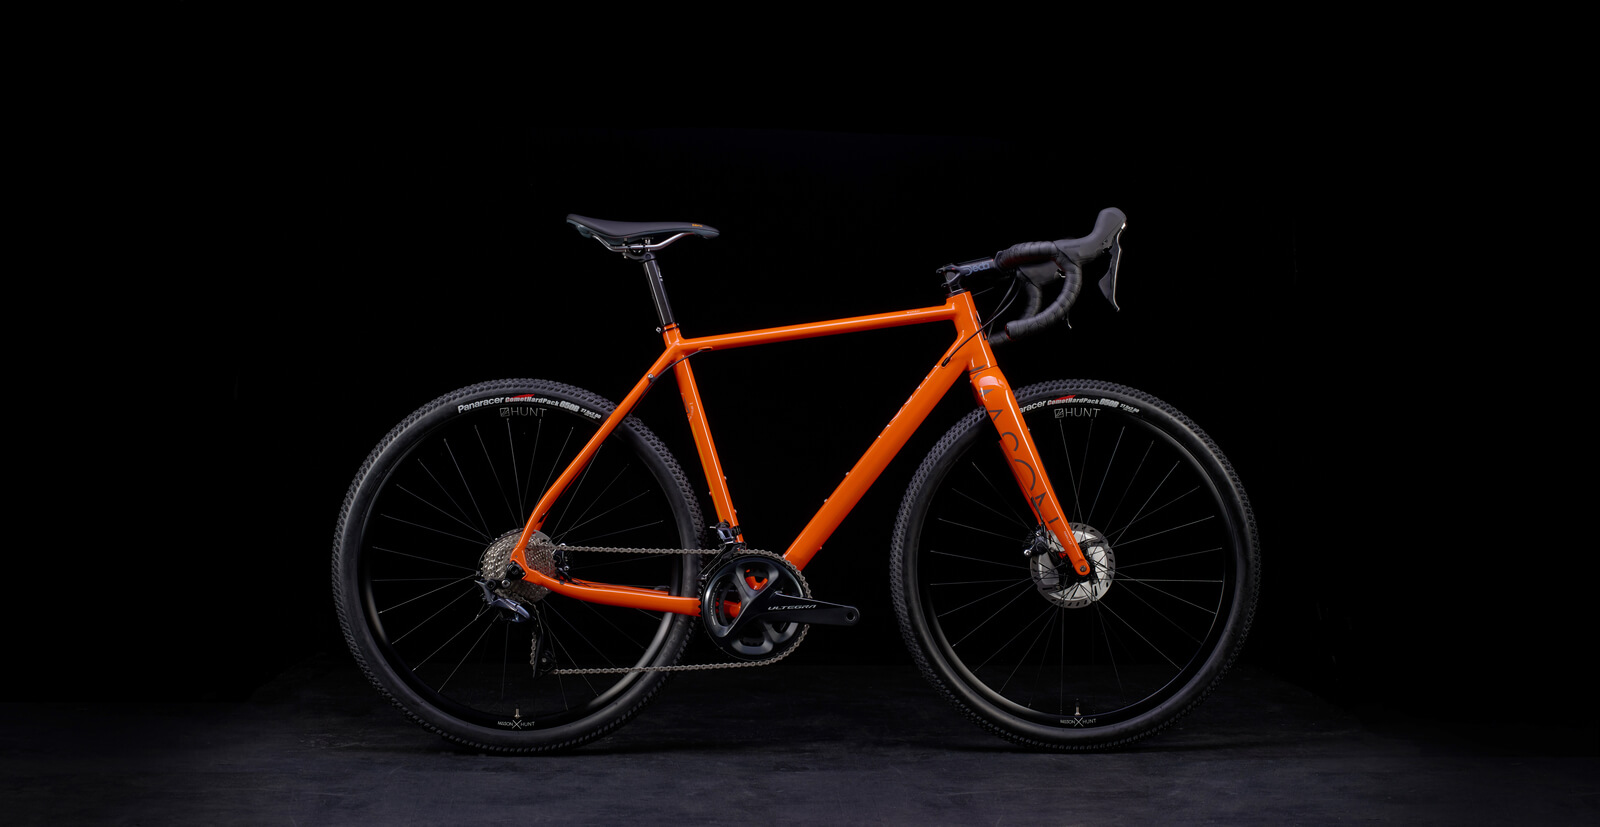 Mason Cycles builds a product comparison tool for their bikes using Spree Commerce